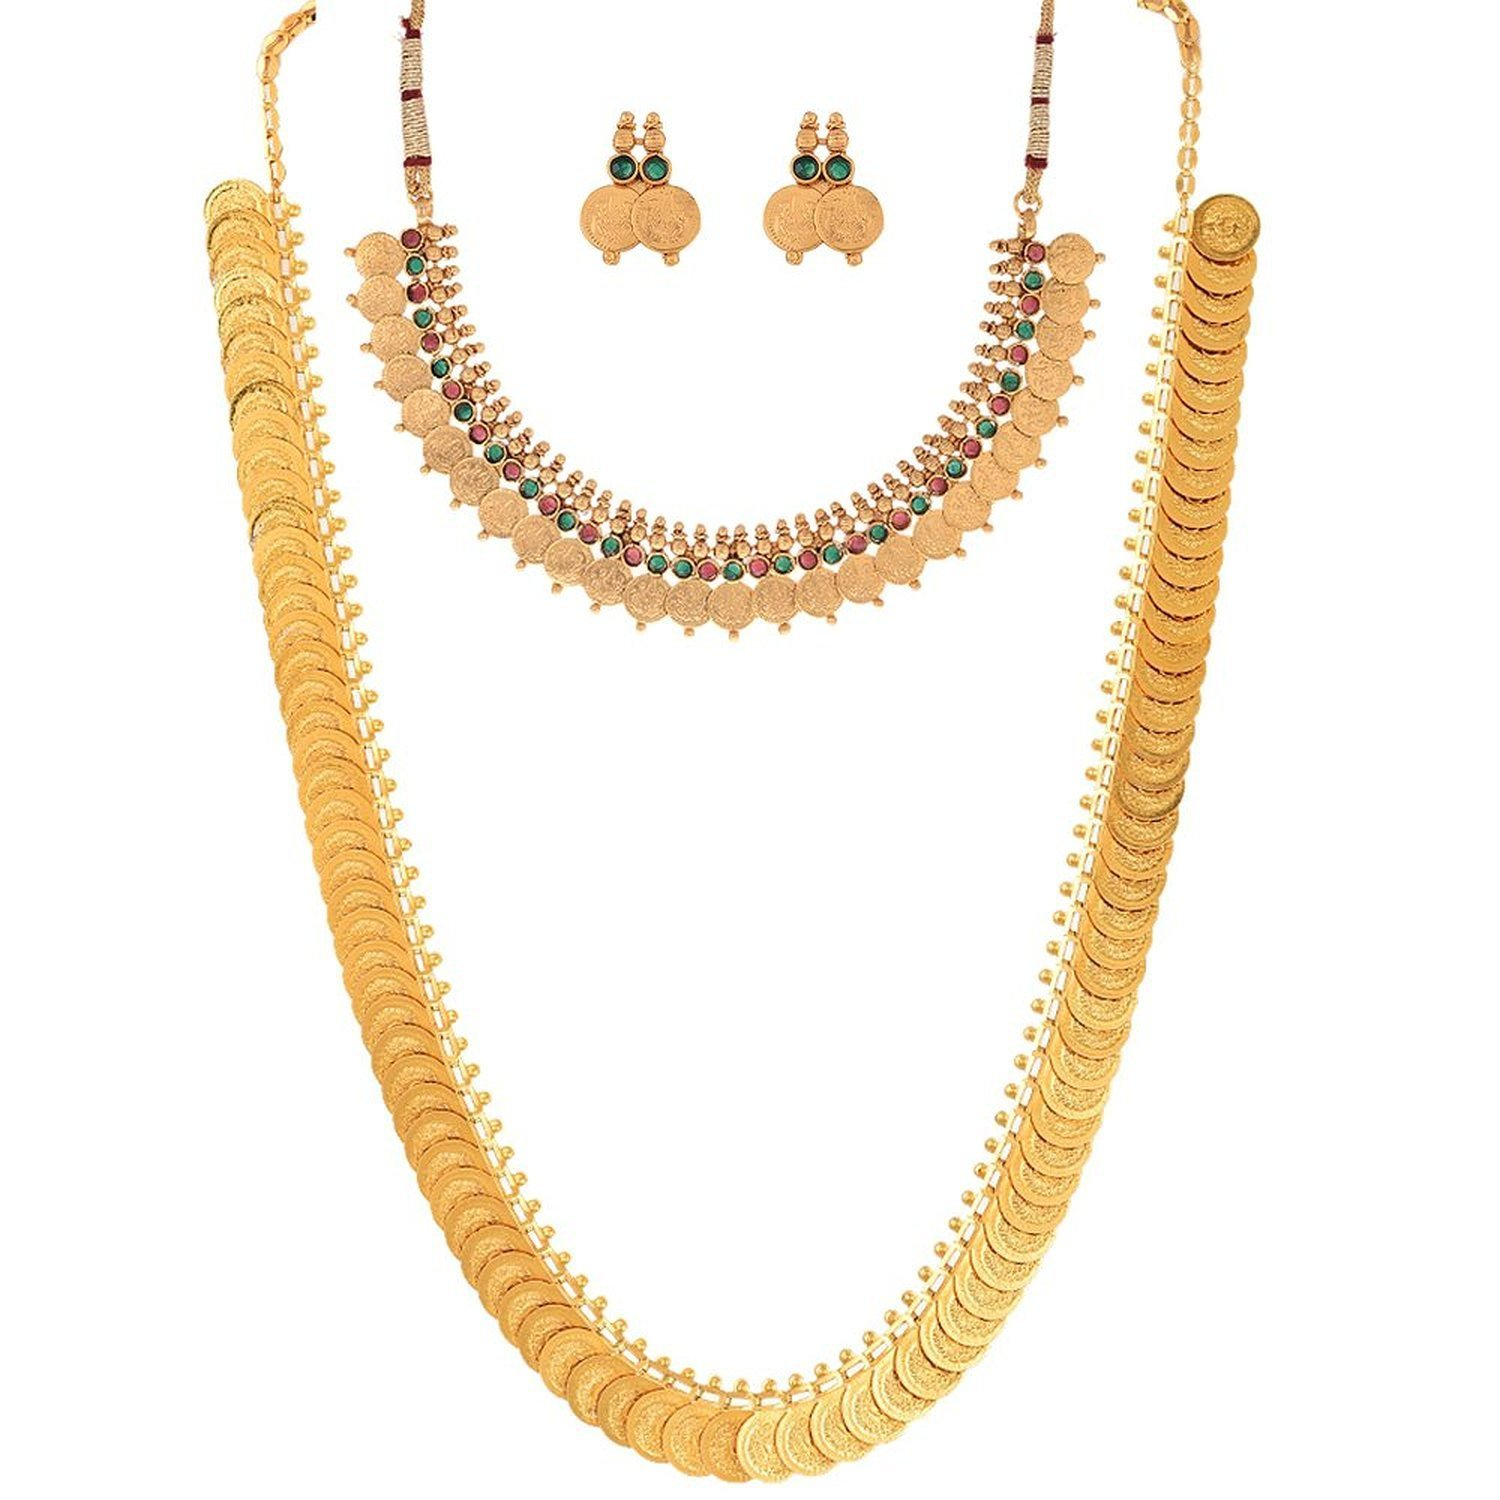 aldo at carville necklaces jewellery shoes for pin s women sale accessories